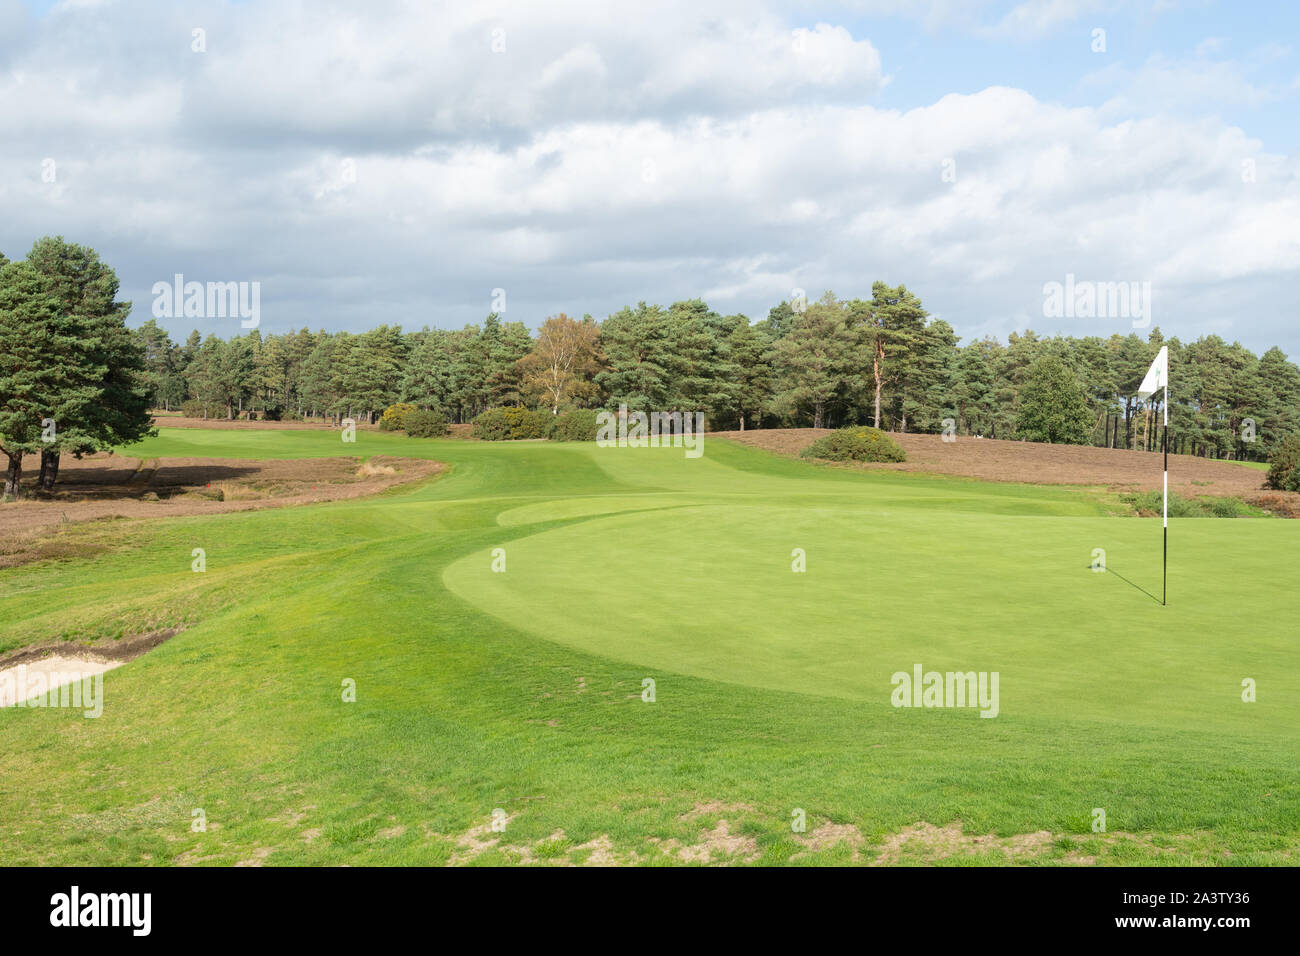 view-of-sunningdale-golf-course-or-club-in-berkshire-england-uk-2A3TY36.jpg